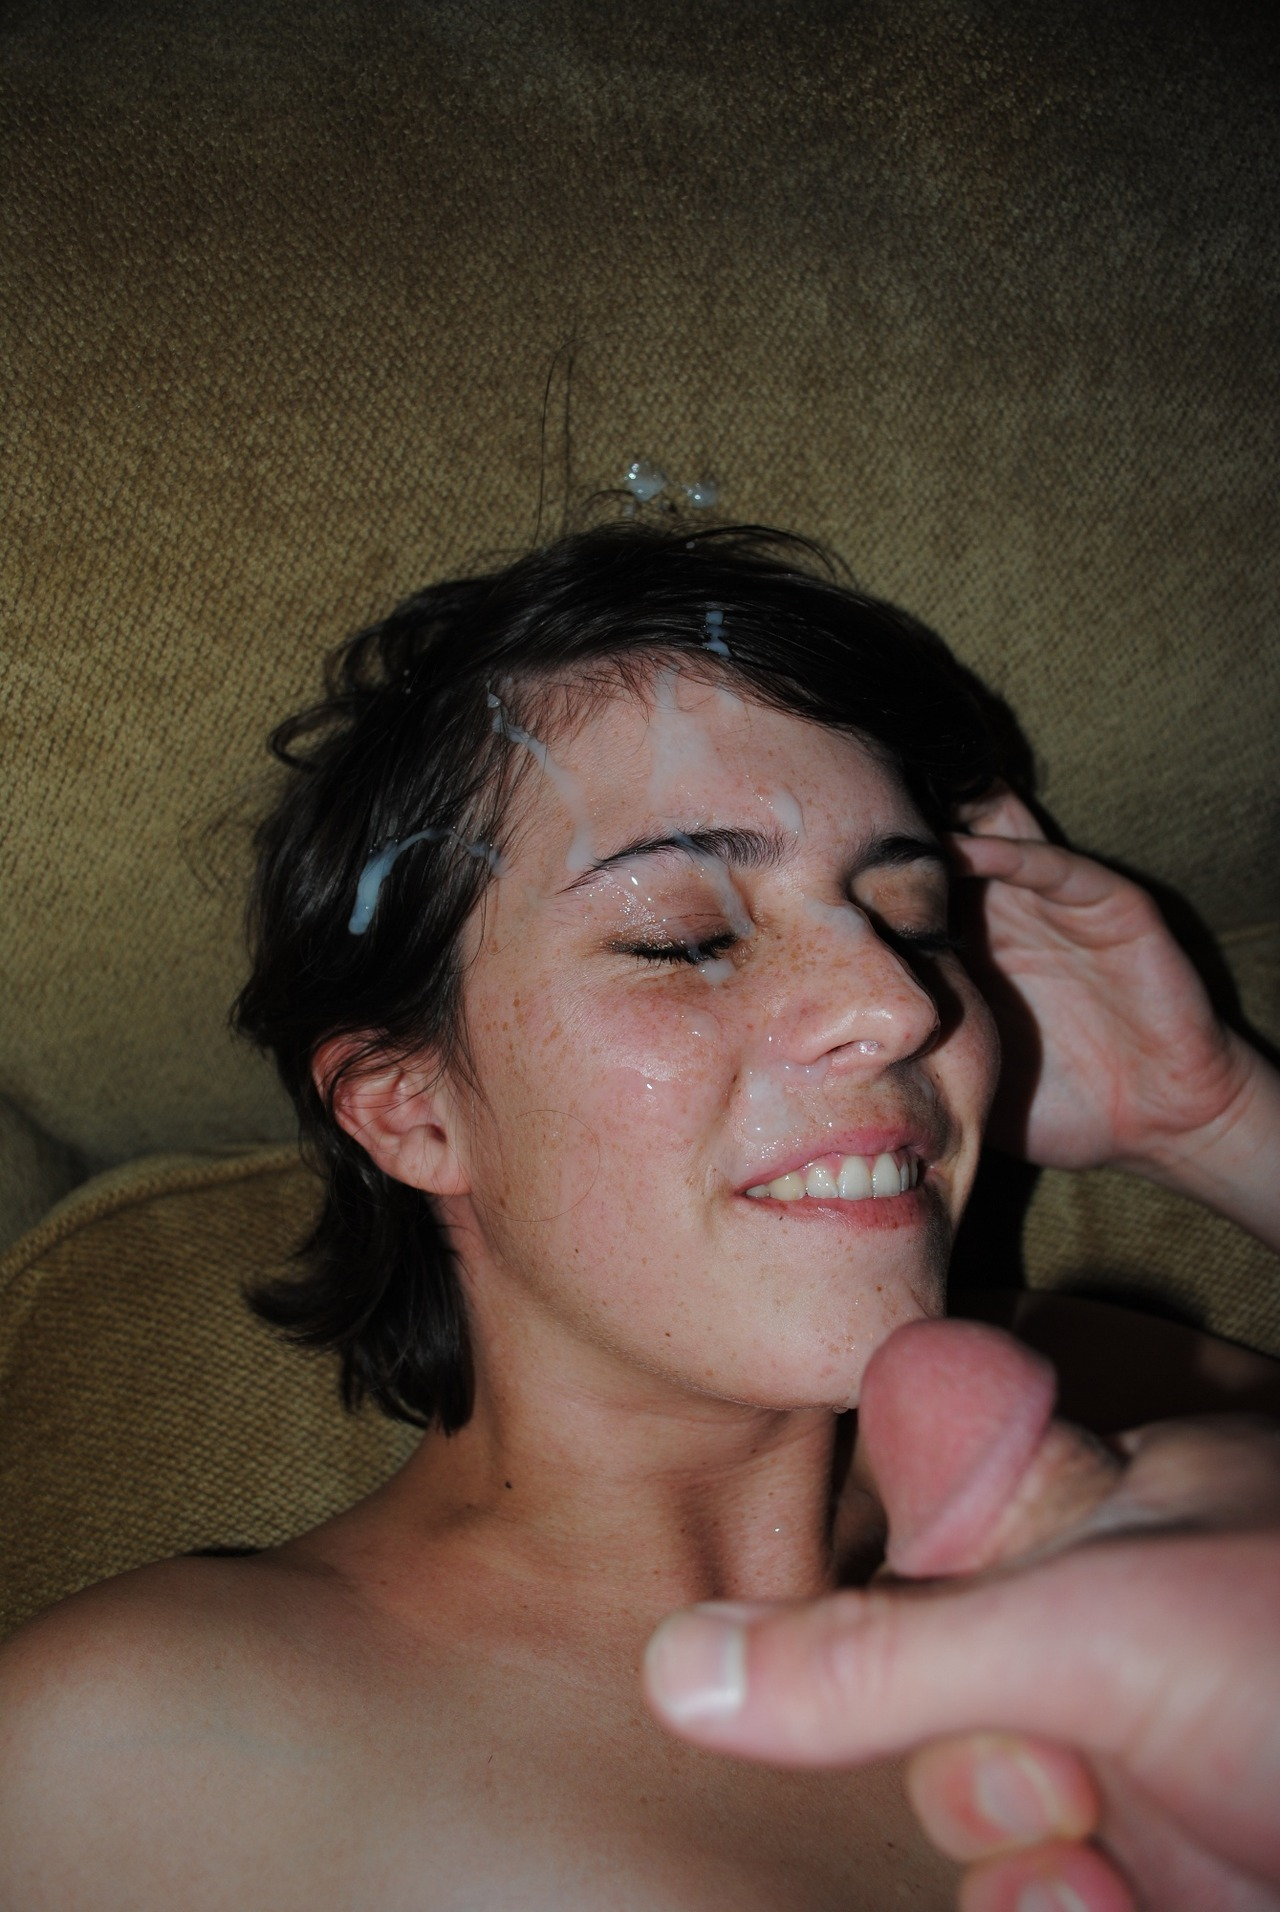 amateur cumshot photos from tumblr 1